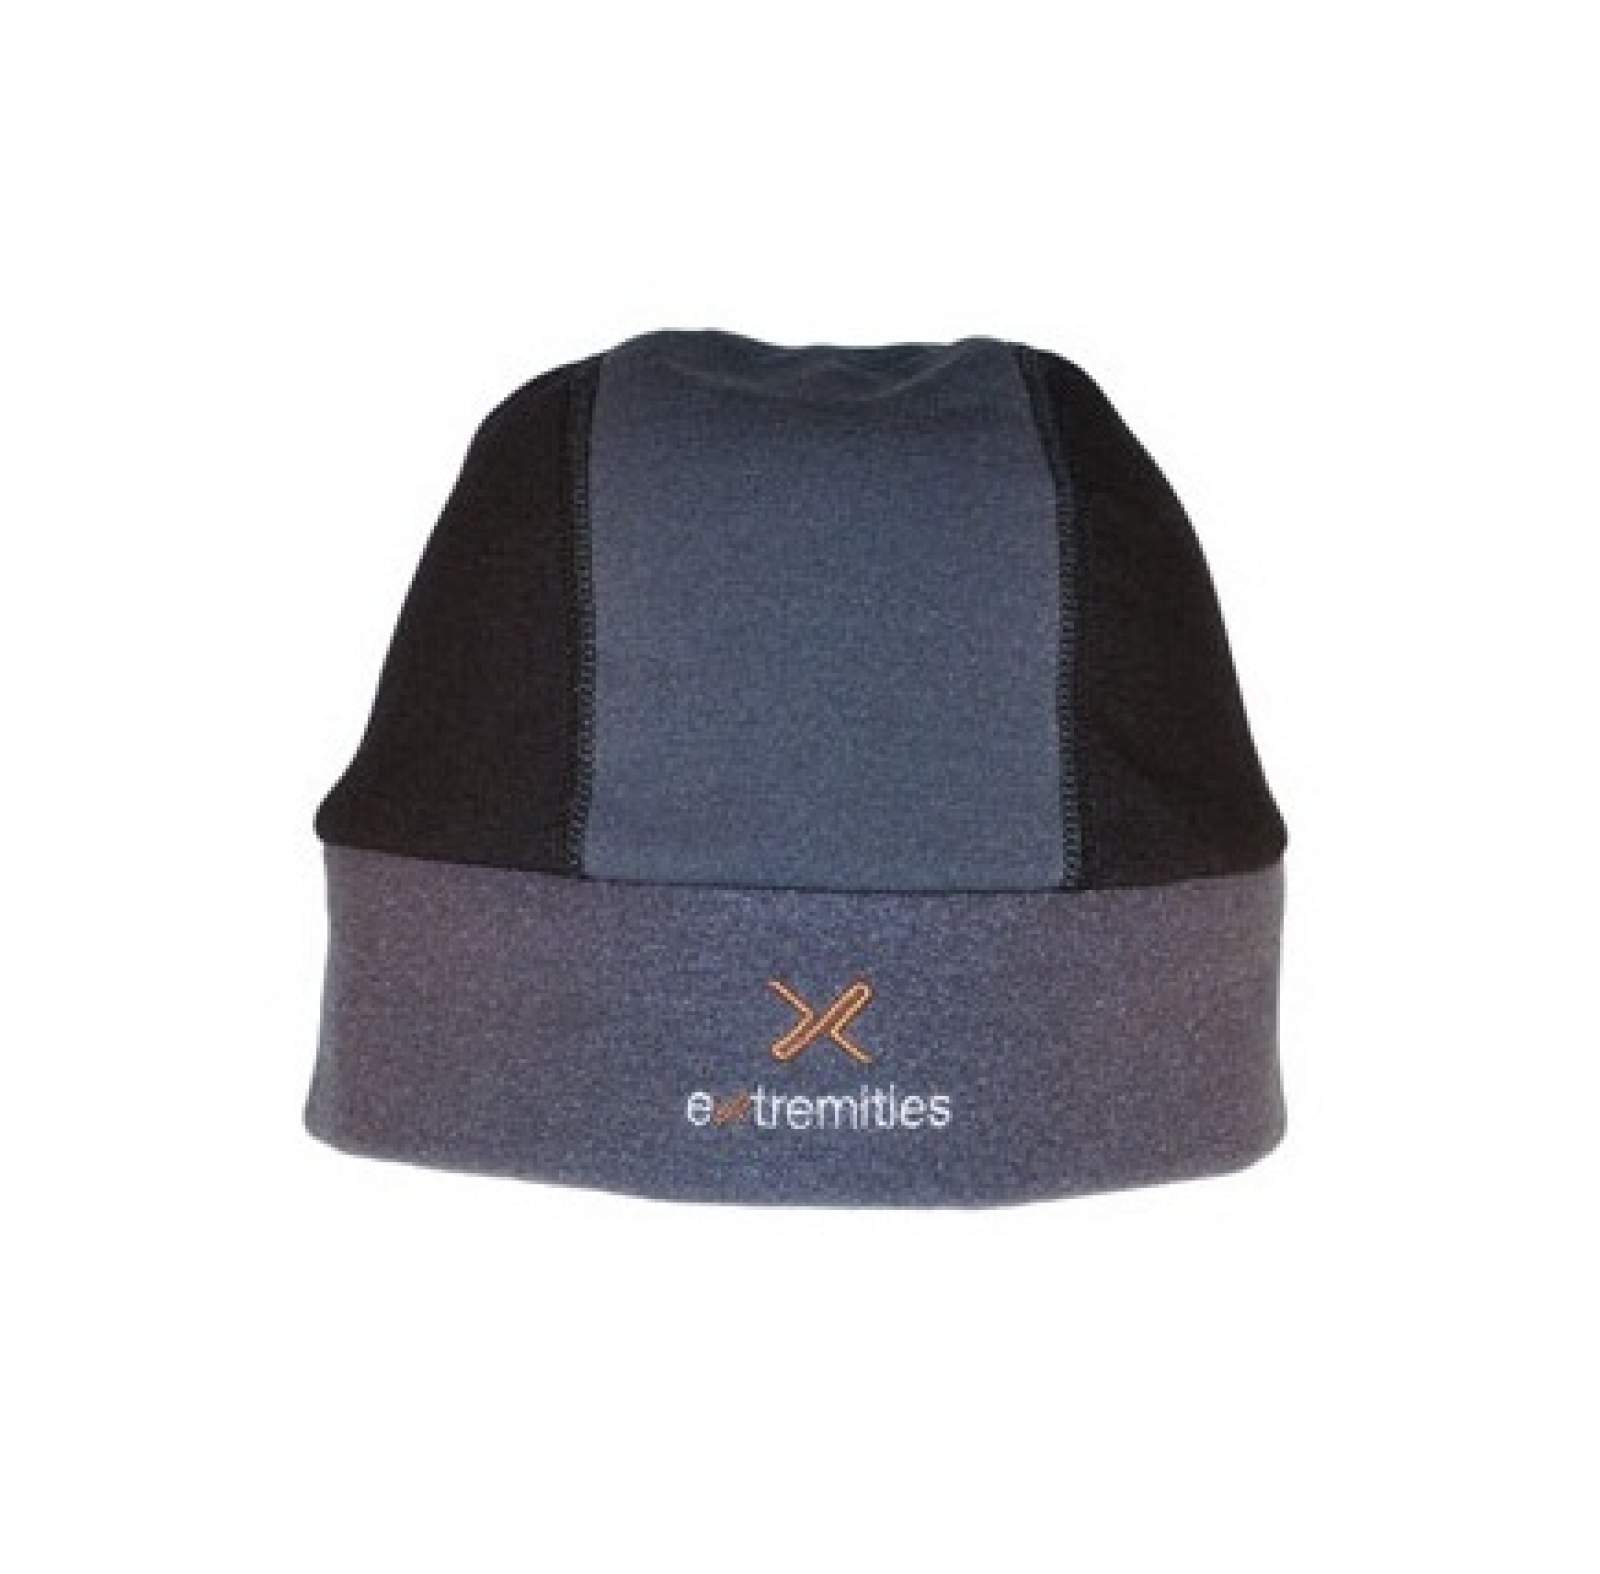 Extremities Шапка Extremities Power Stretch® Banded Beanie Унисекс ... 9b9052f71a39